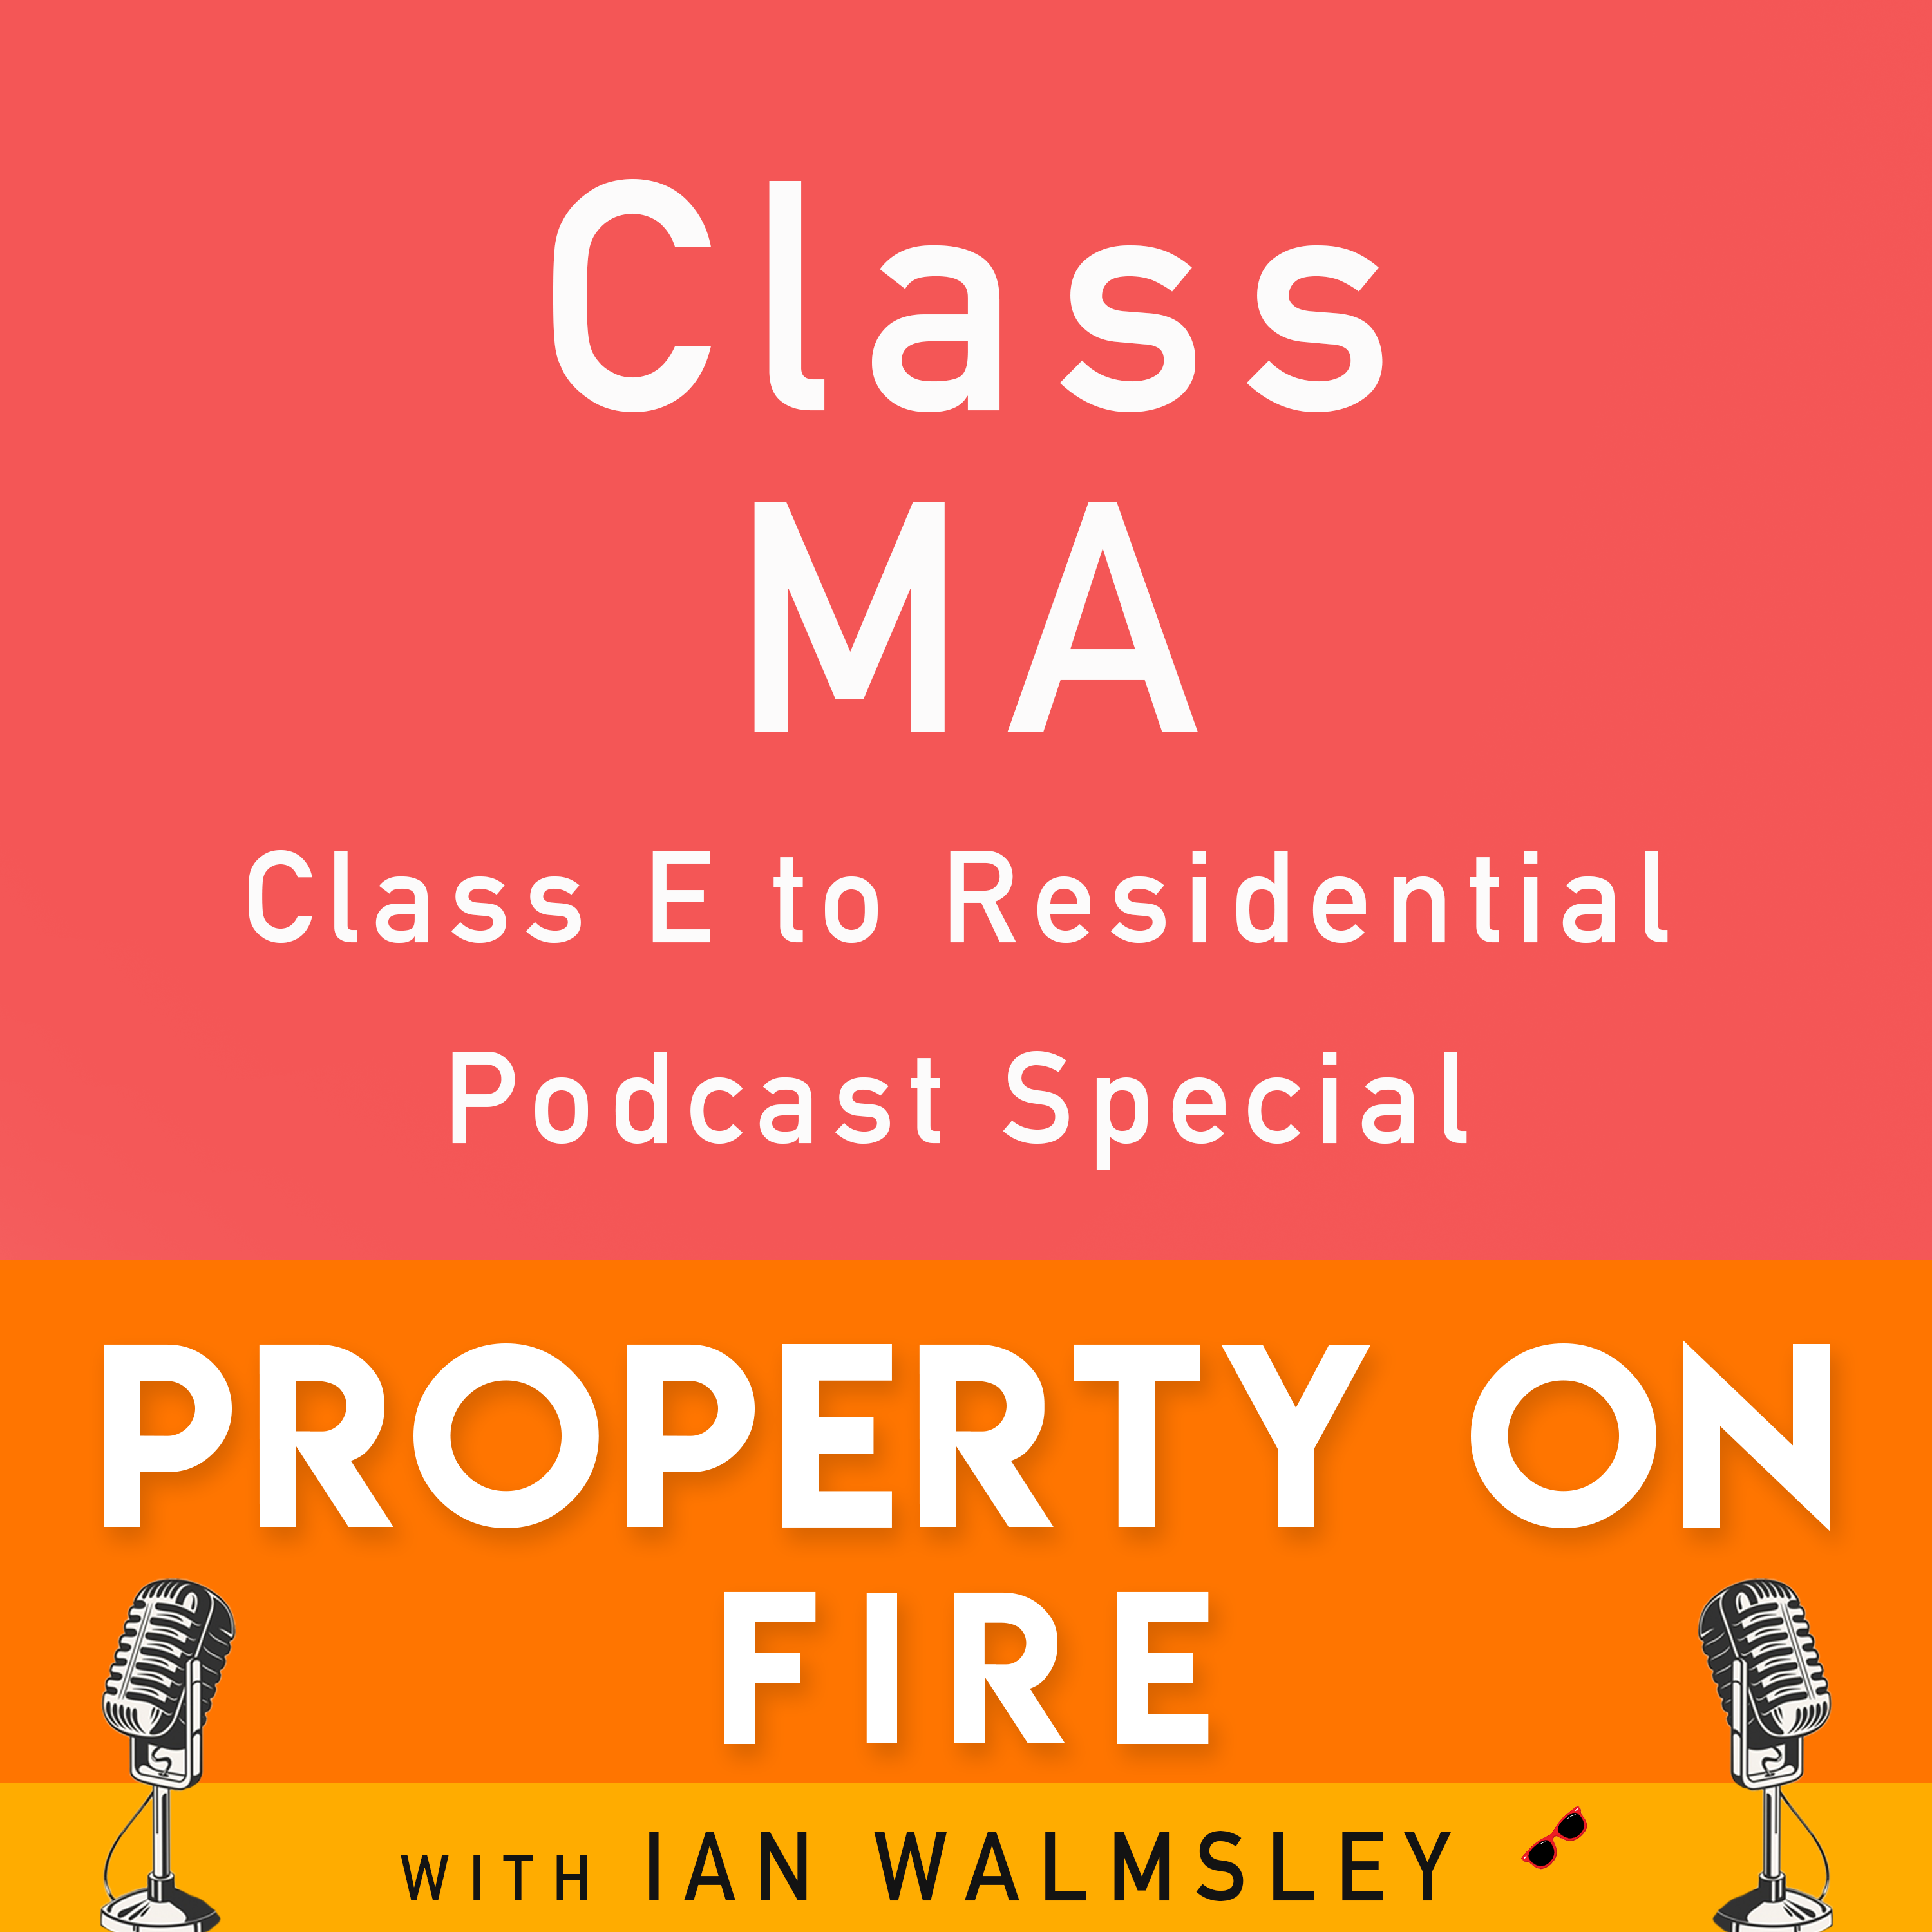 Artwork for podcast Property on Fire